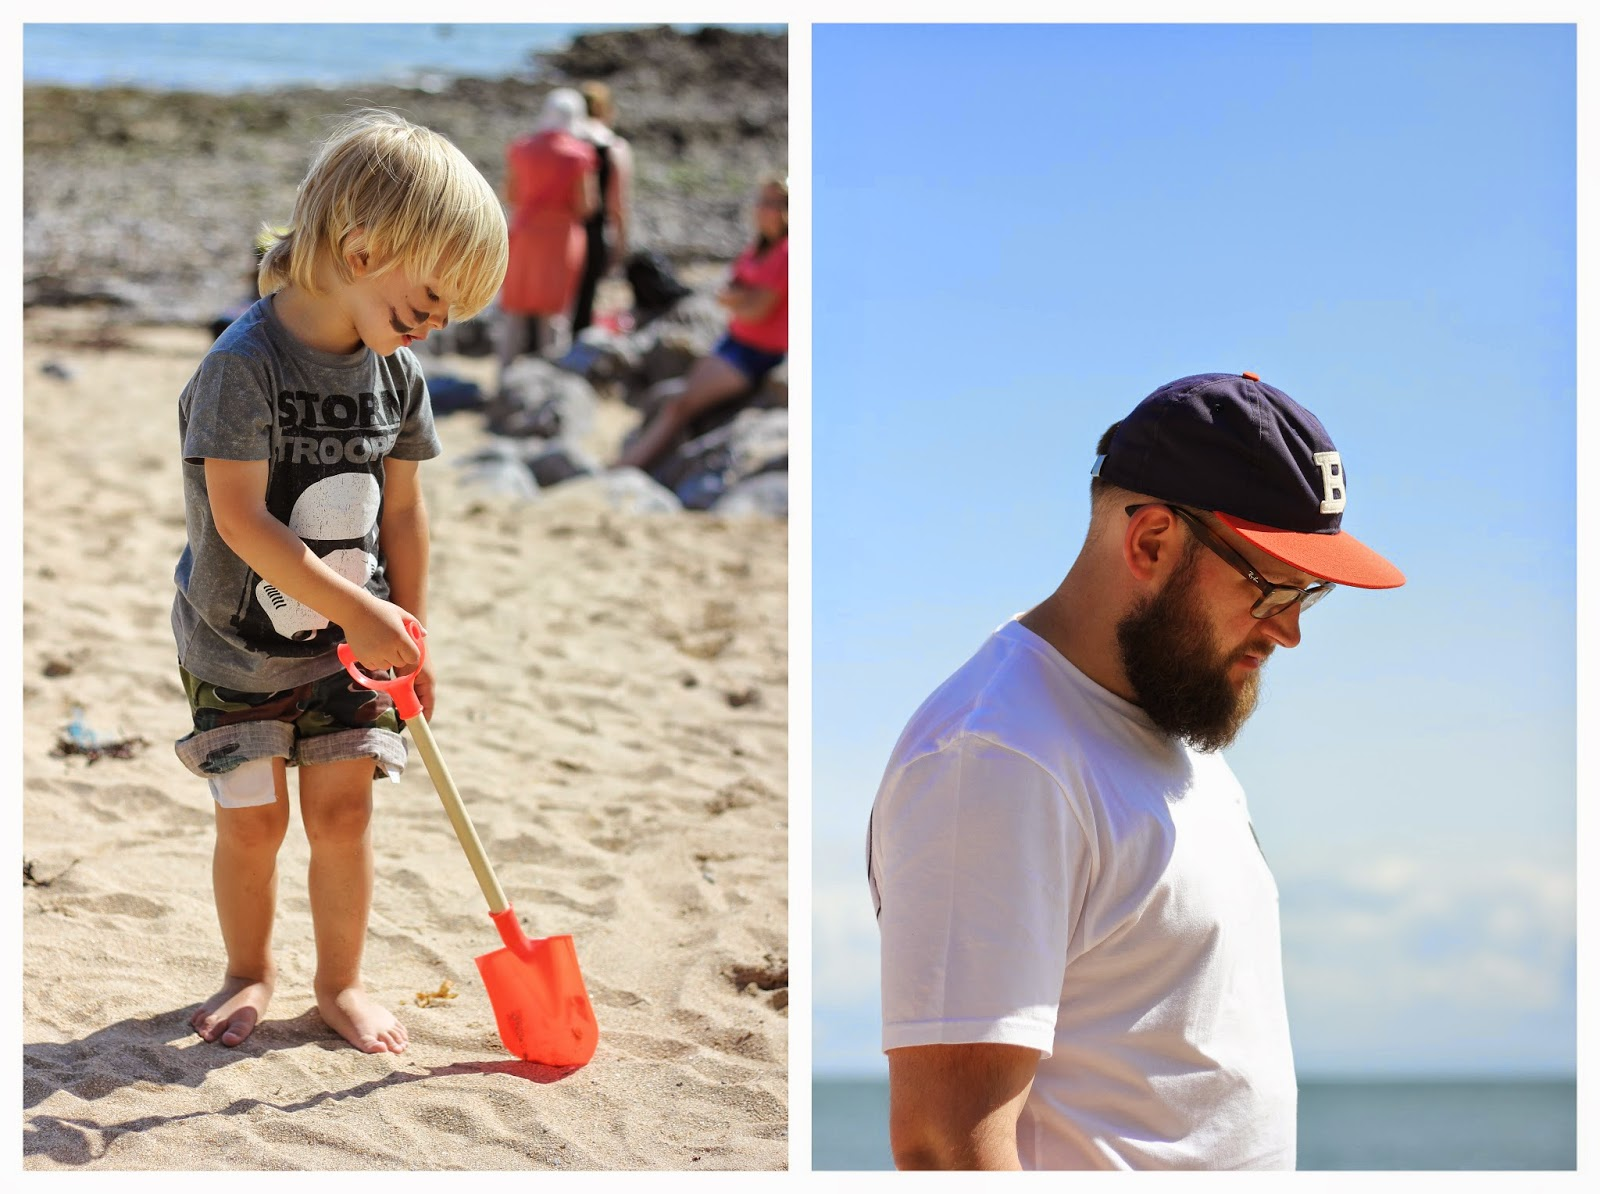 digging on the beach